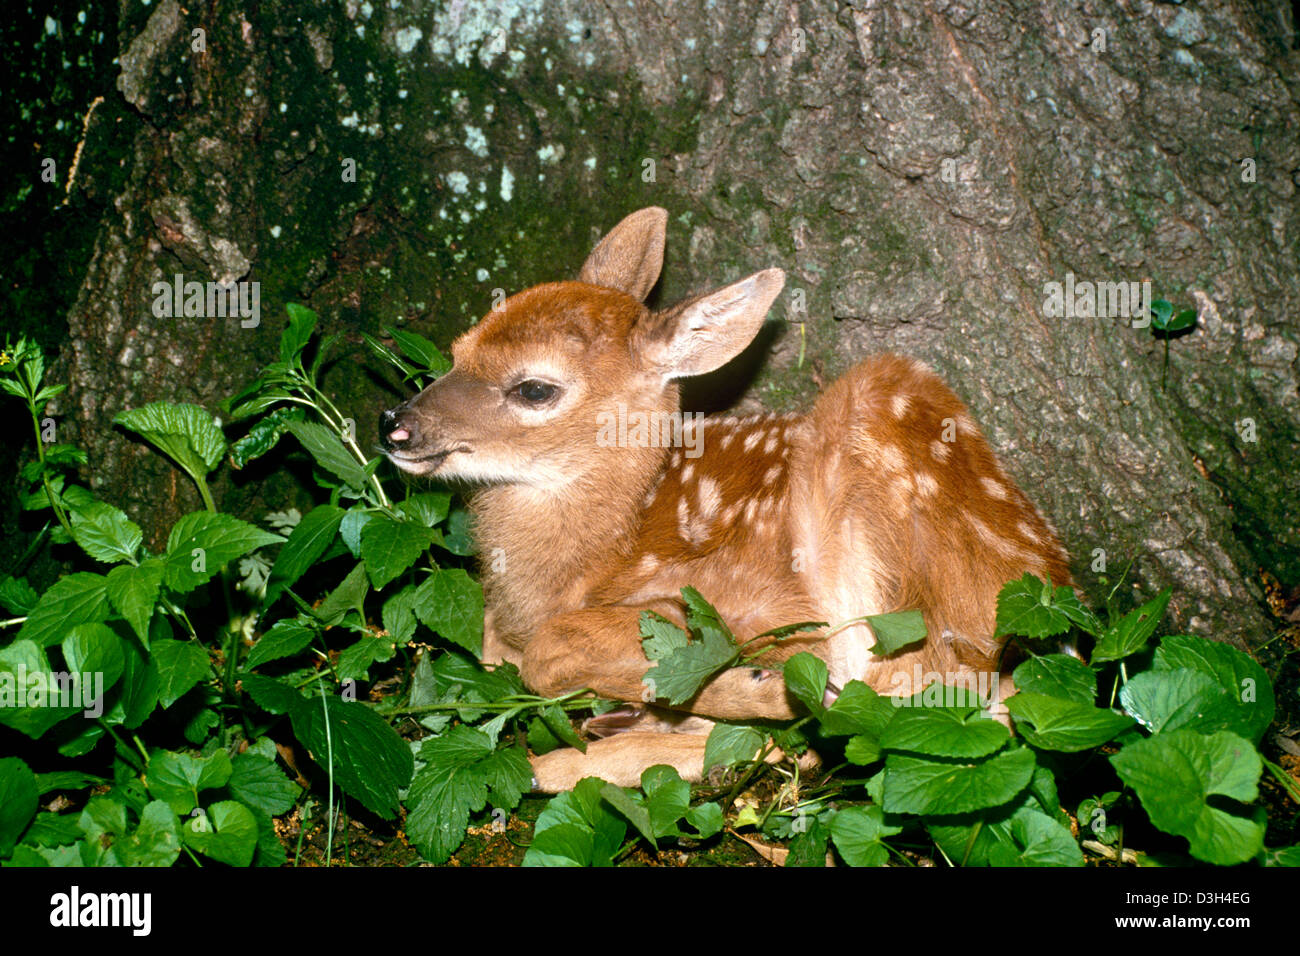 White tailed deer fawn (Odocoileus virginianus) sitting at base of tree in forest, Missouri, USA - Stock Image